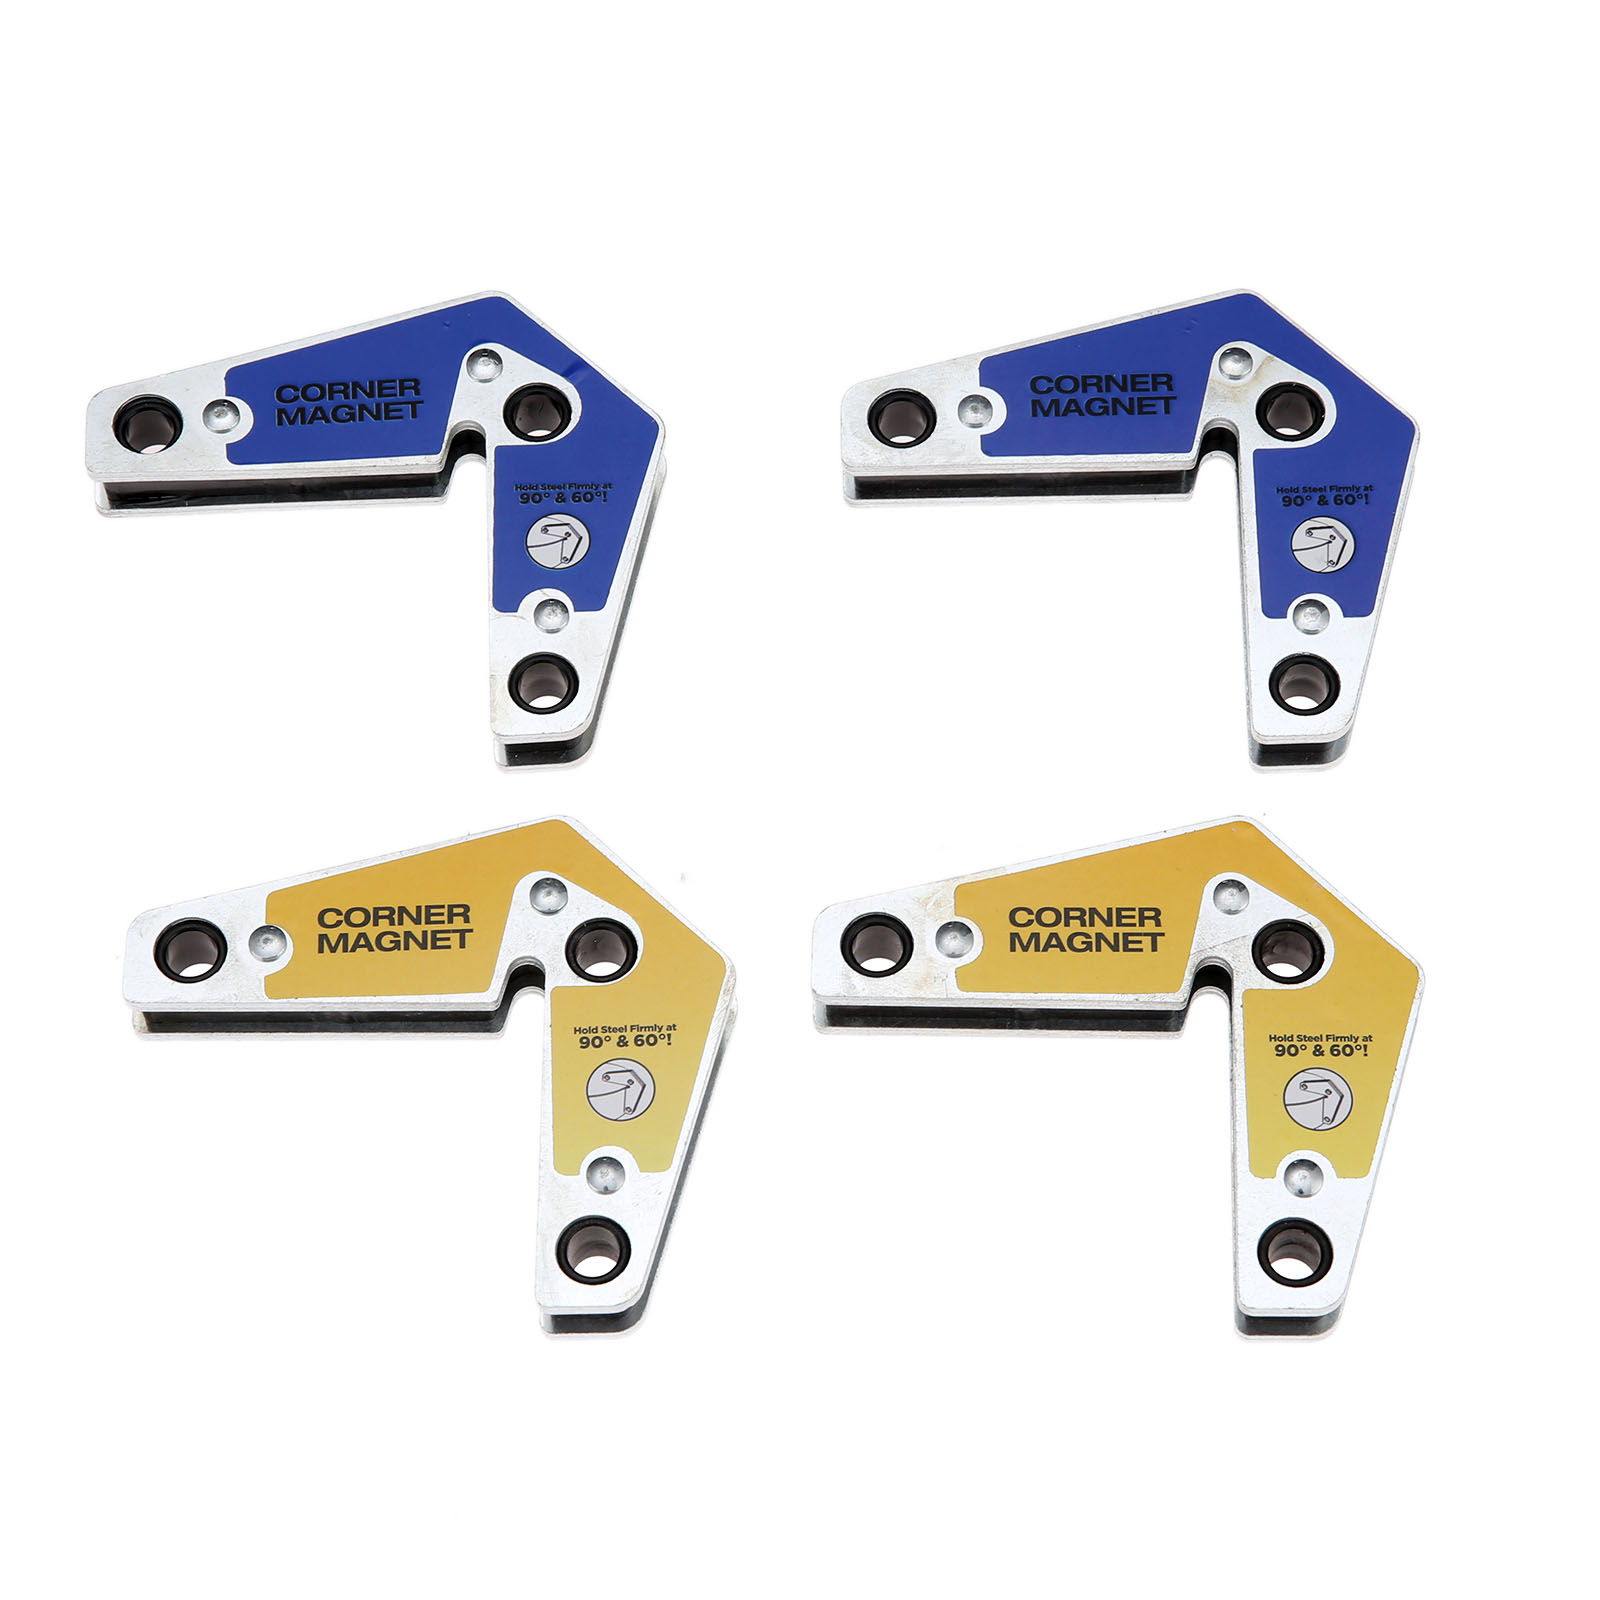 DRELD 2pcs/set Welding Corner Magnet Holder Industrial Internal And External Right Angle Fixator 60 90 Angles Magnetic Clamp